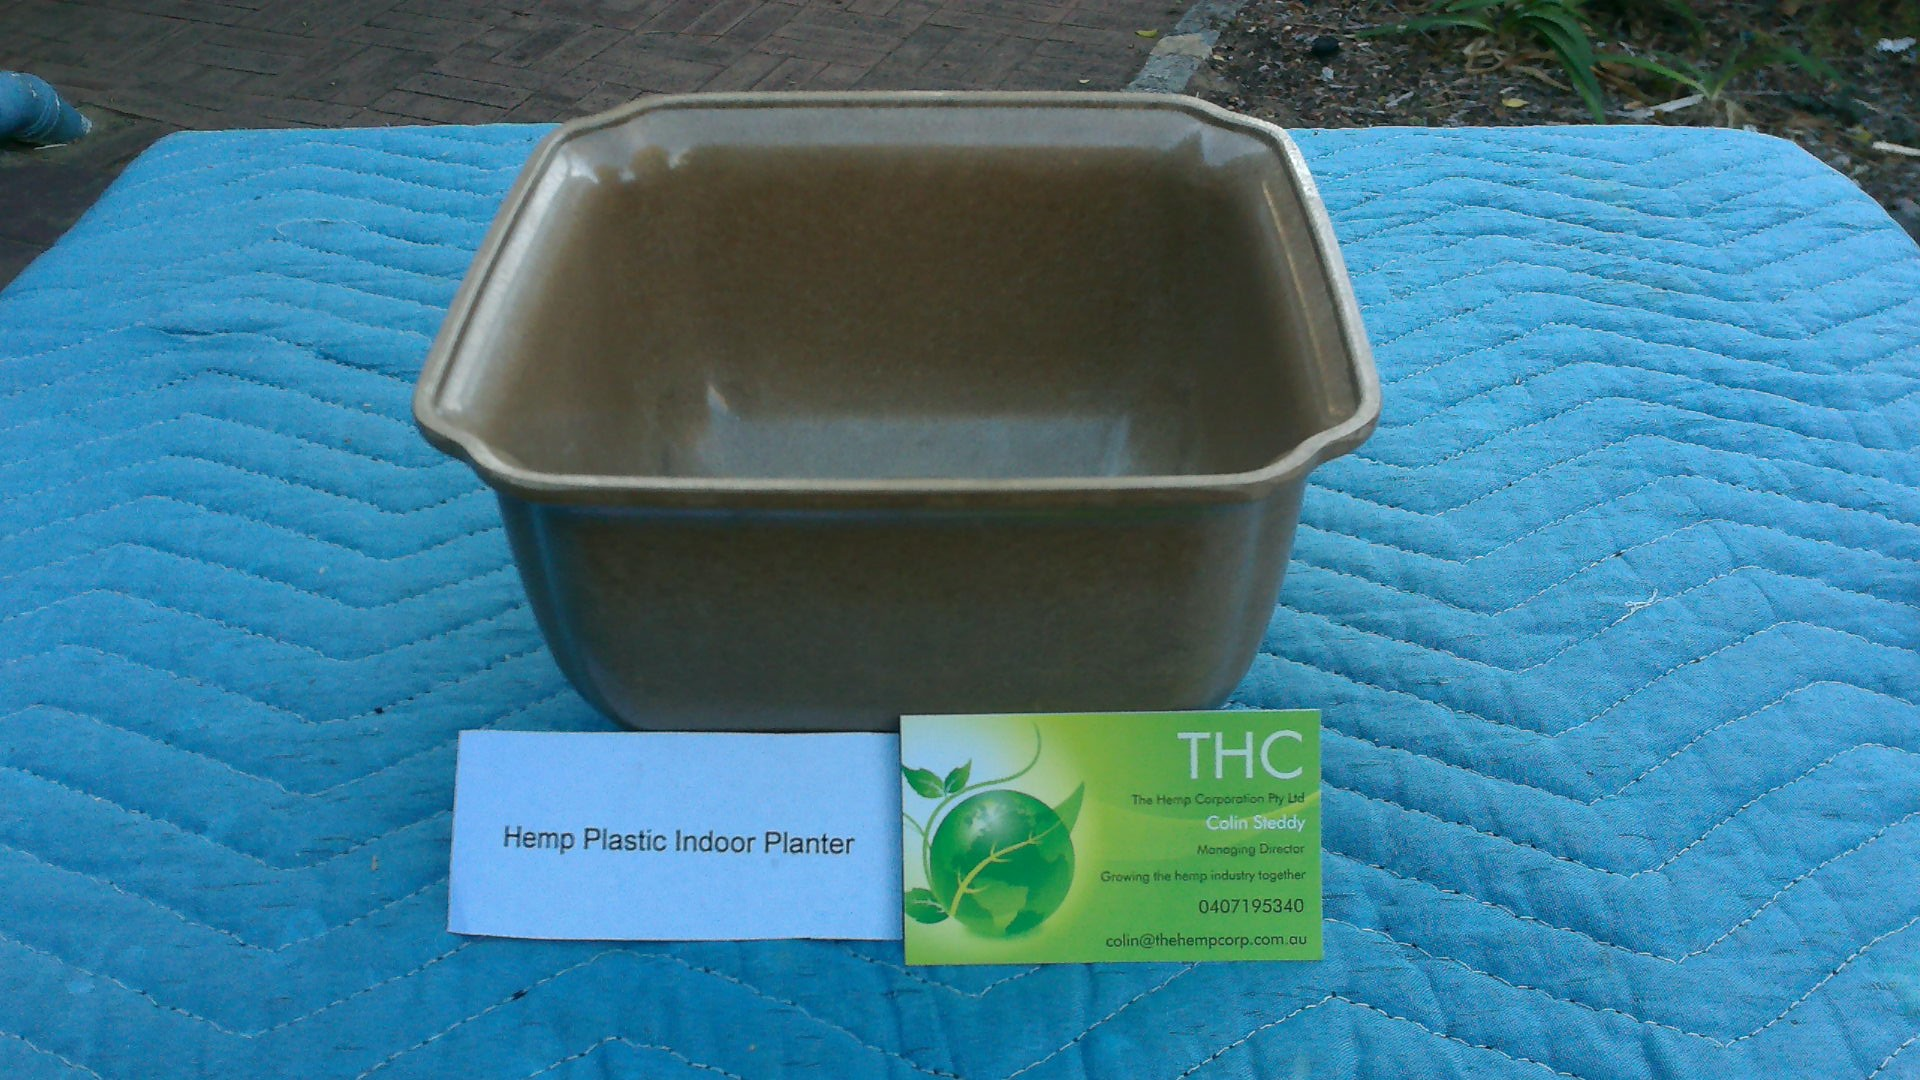 Hemp plastic indoor planter